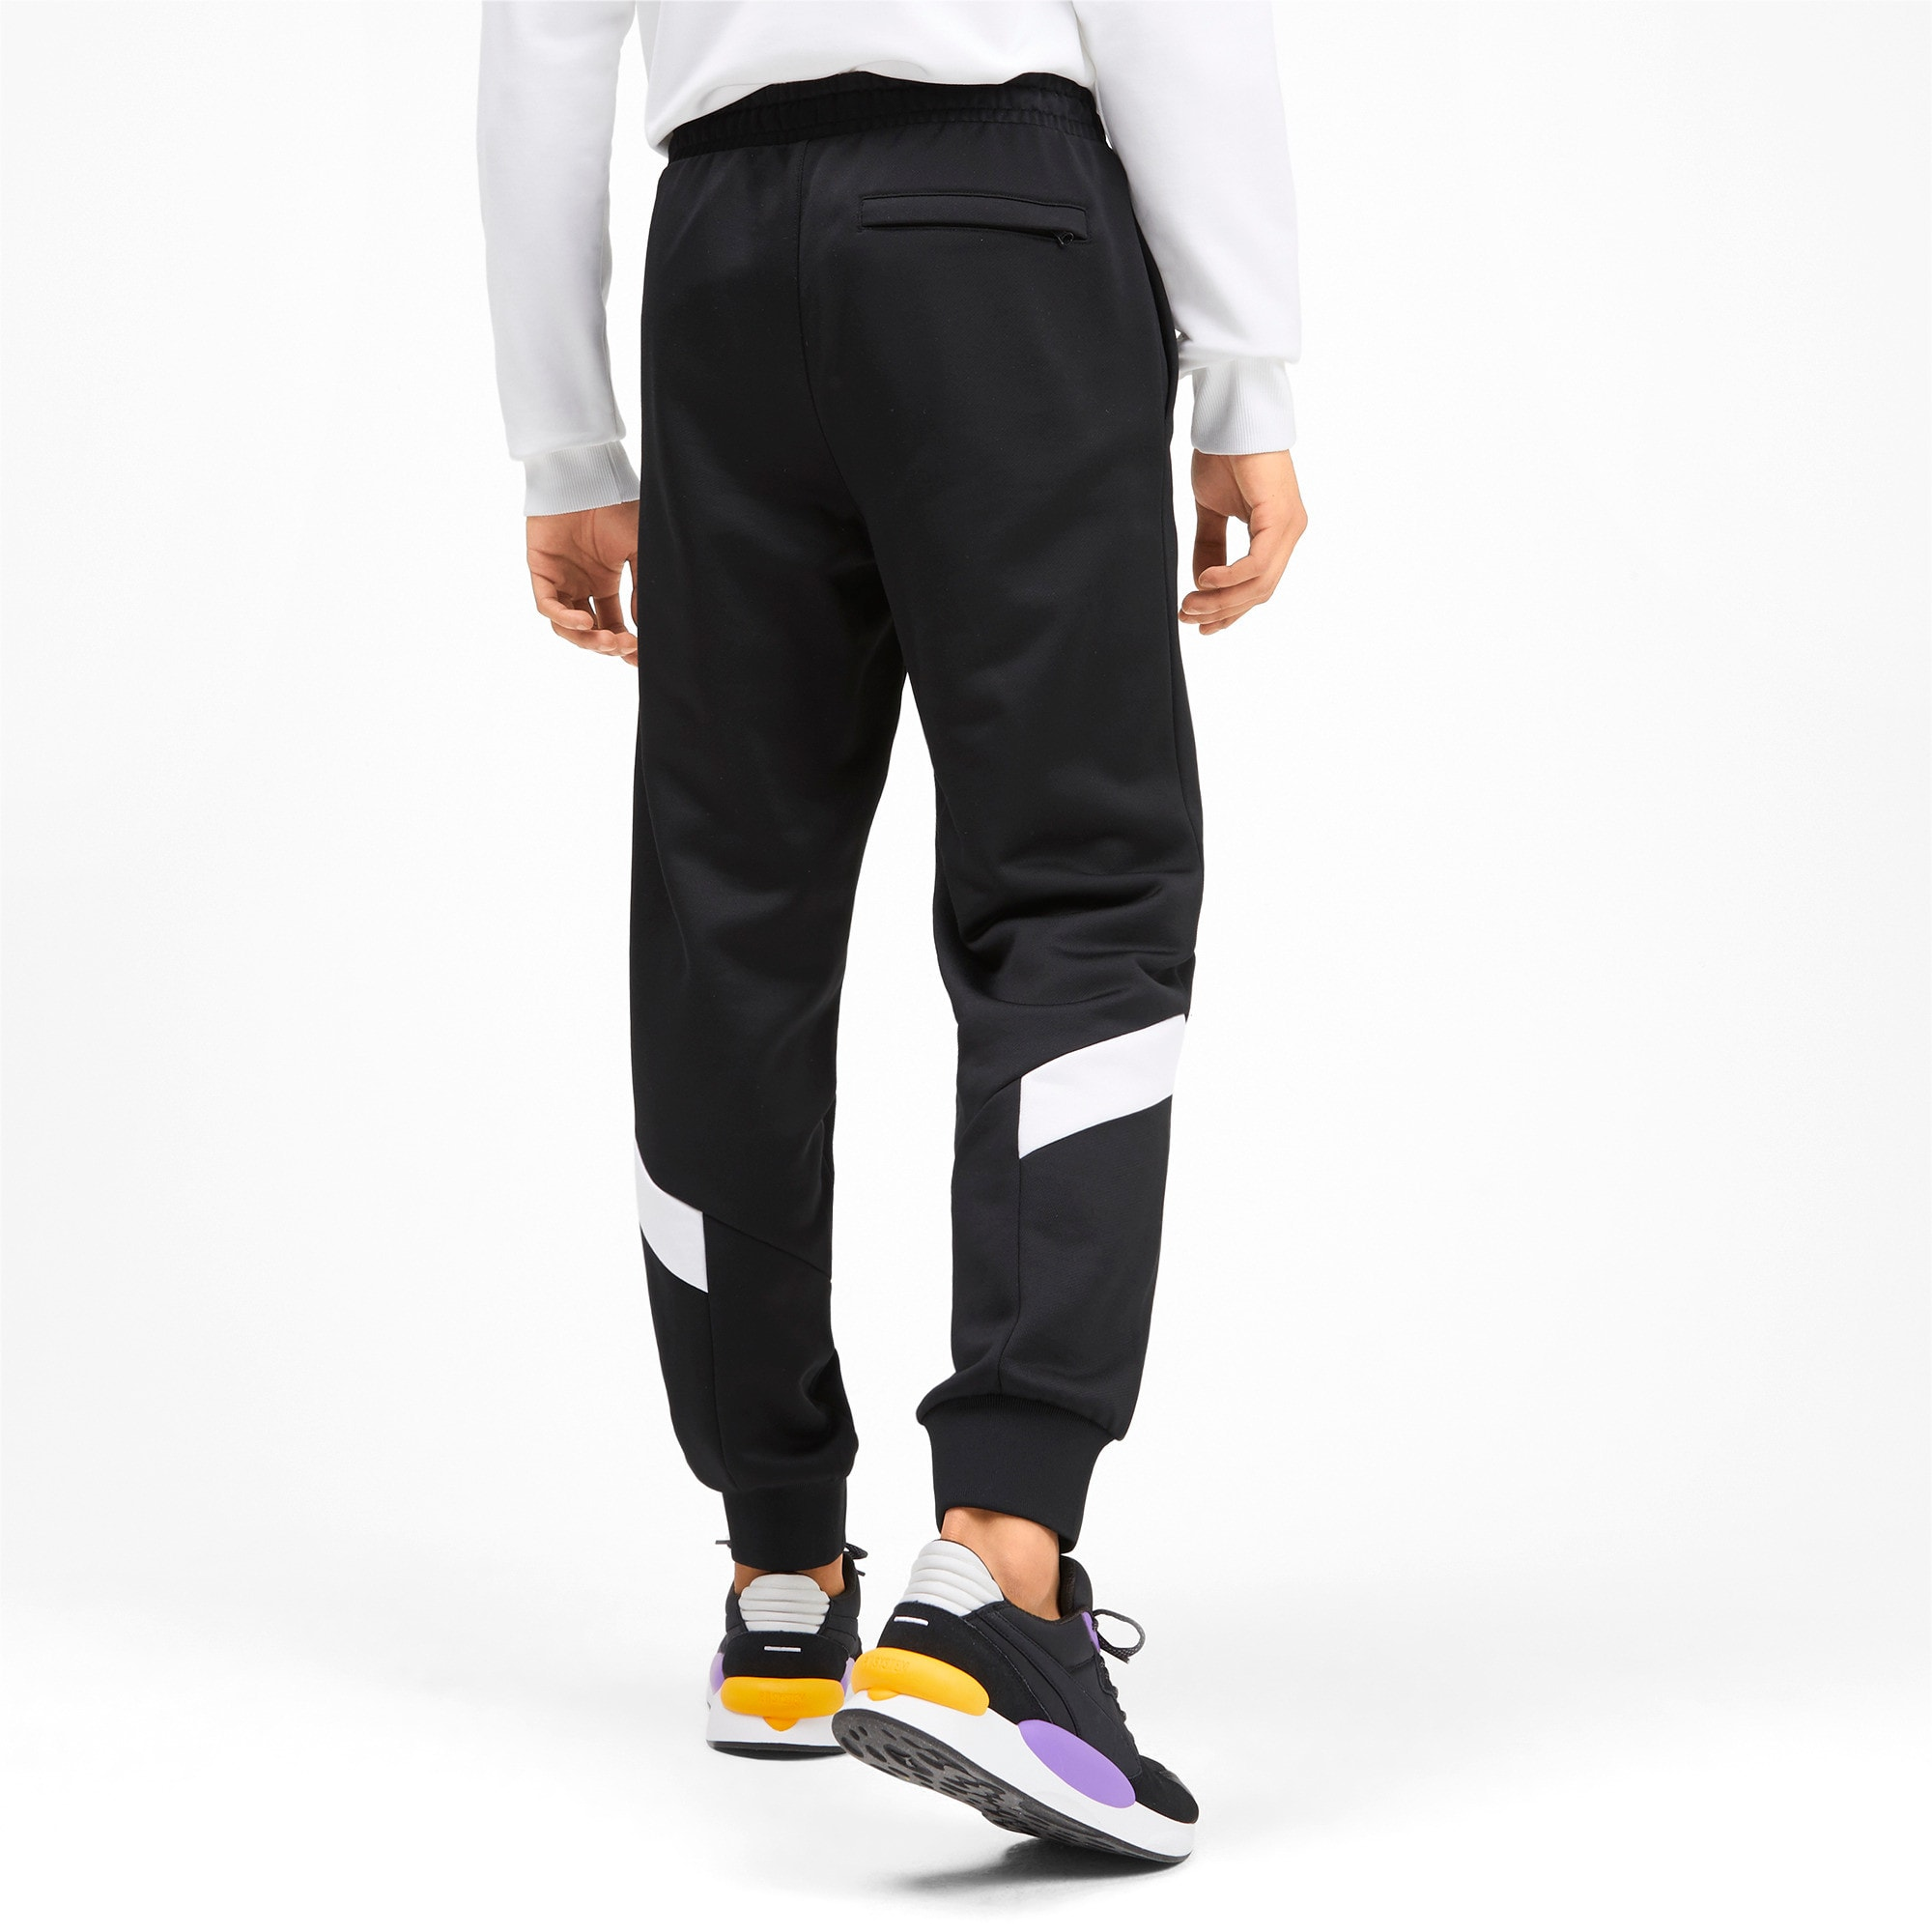 Thumbnail 2 of Iconic MCS Knitted Men's Track Pants, Puma Black, medium